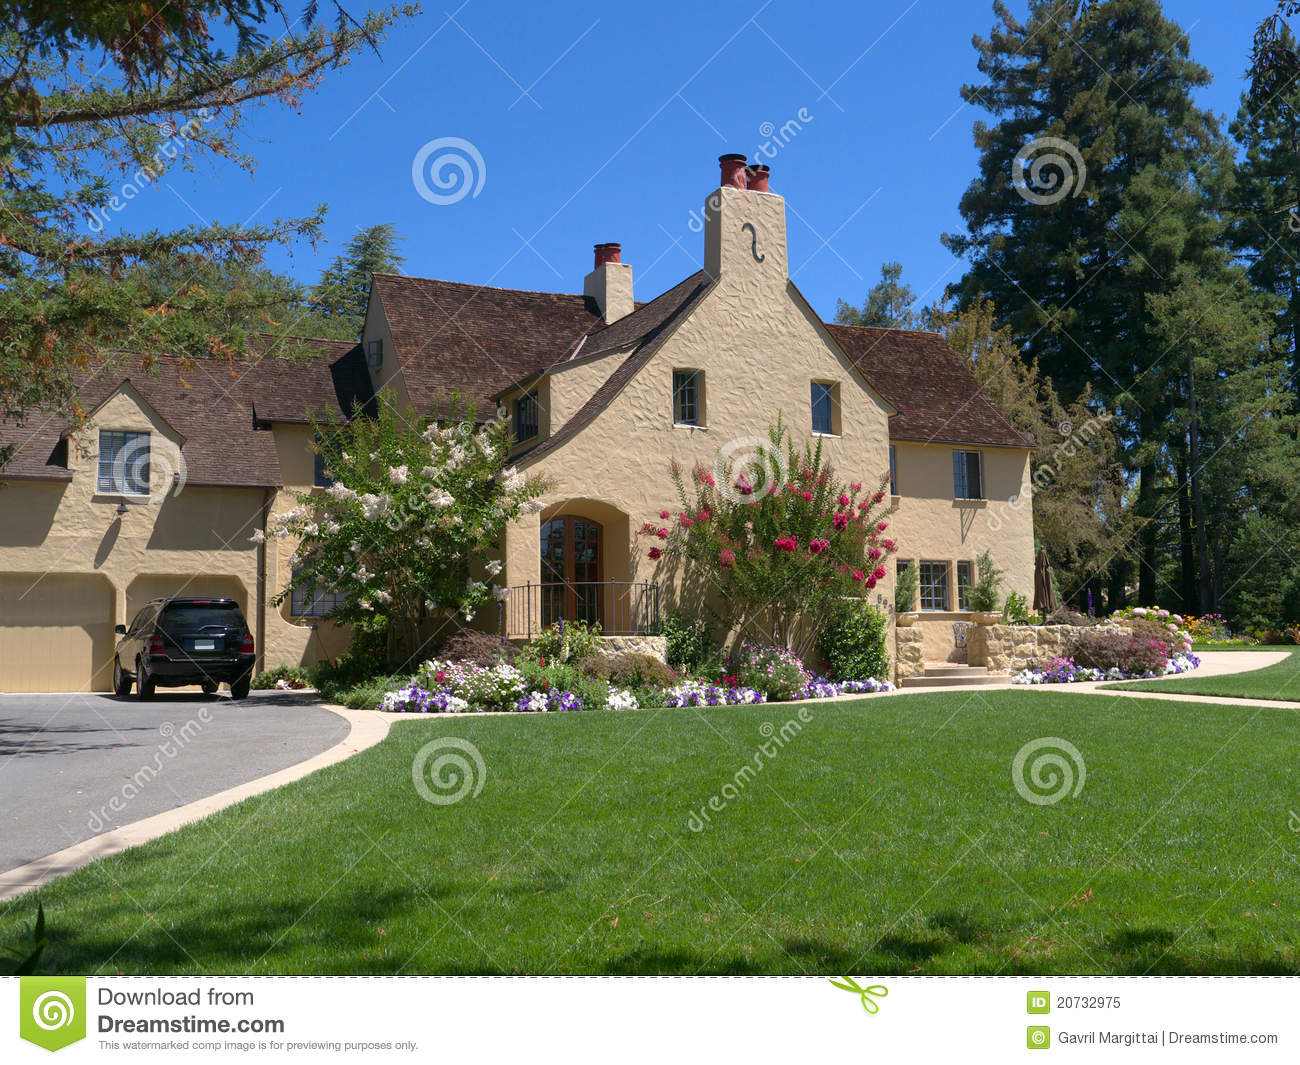 Luxury house with wide driveway and front lawn royalty for Free luxury home images